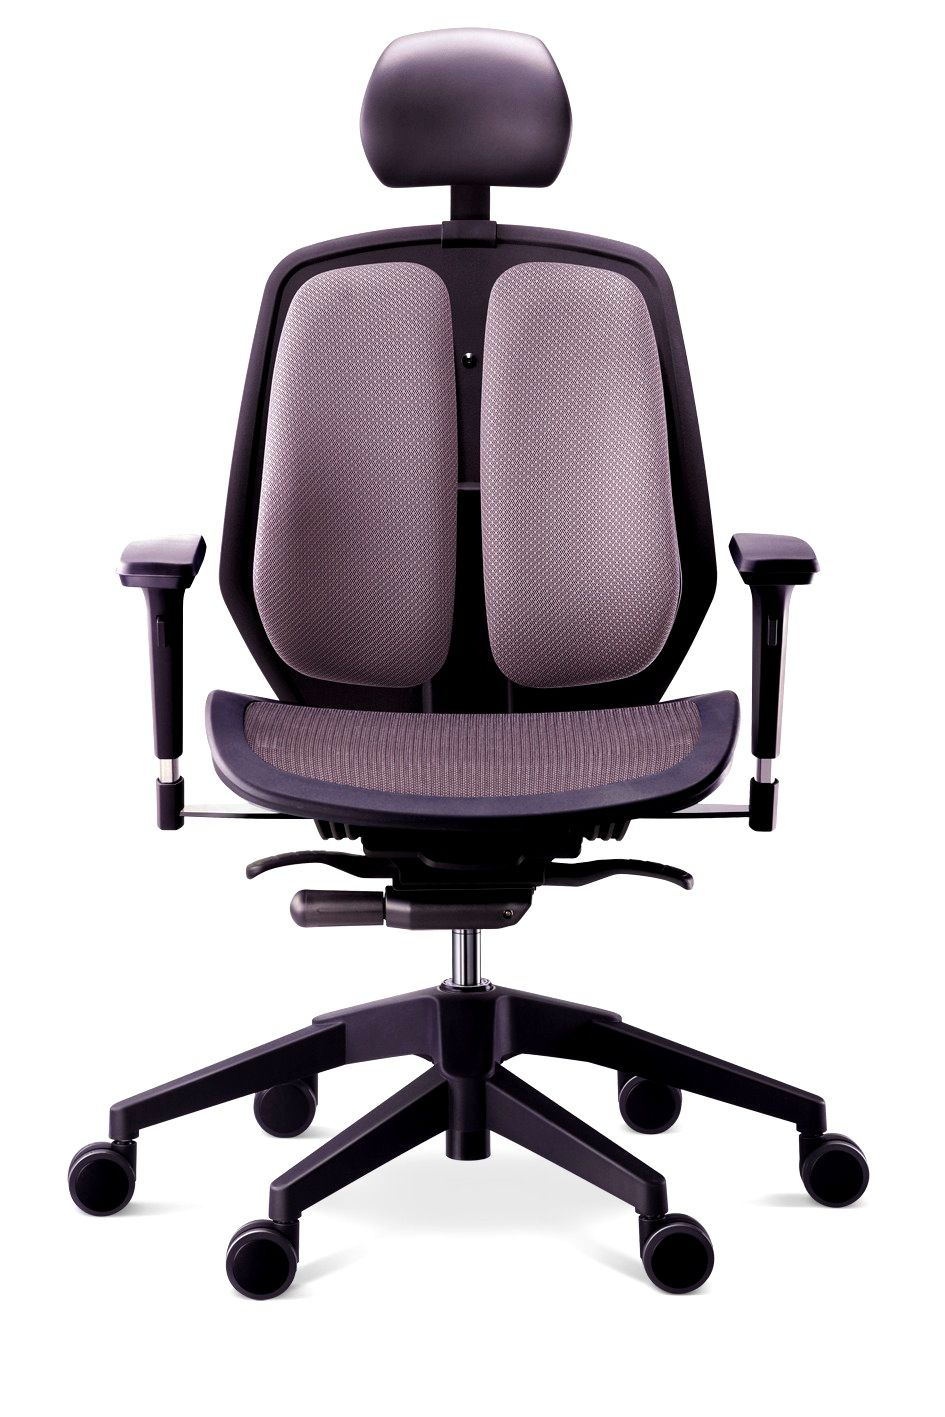 Office Chair For Short Person Pin By Neby On Modern Home Interior Ideas Best Ergonomic Office